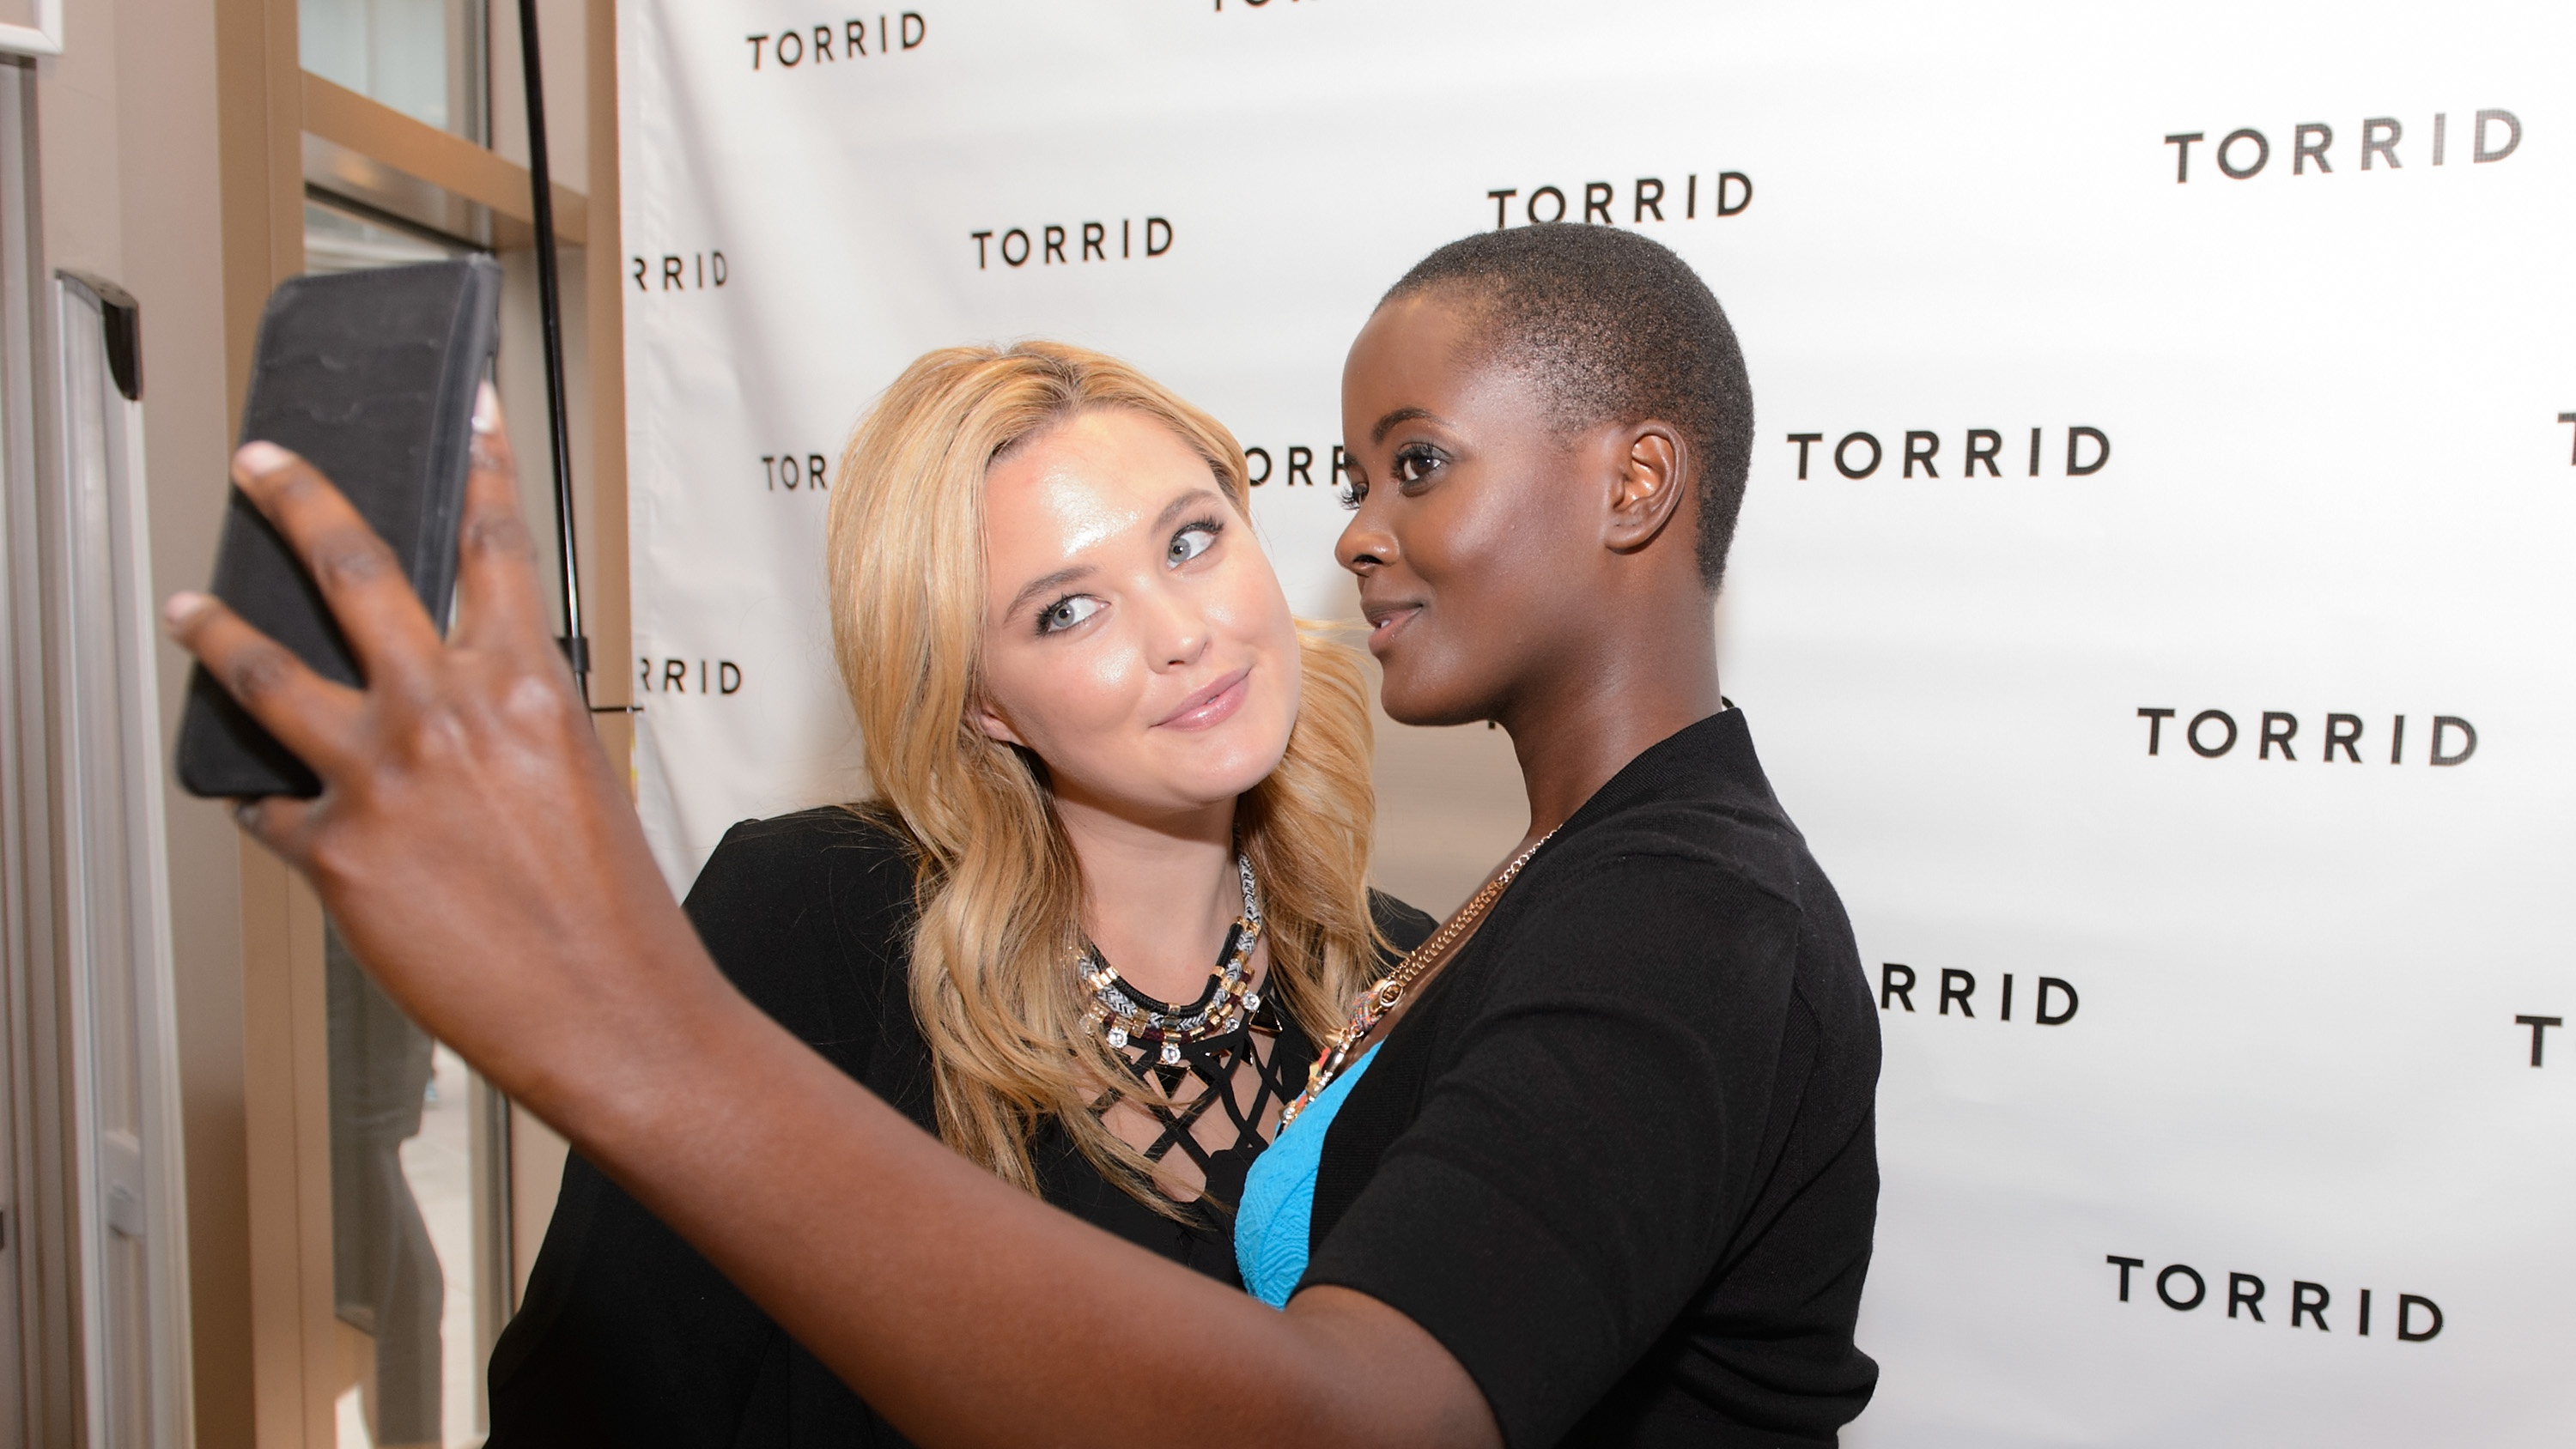 Georgina Burke and Philomena Kwao attend the grand opening of the TORRID flagship store on Chicago's State Street on April 8, 2015 in Chicago, Illinois.